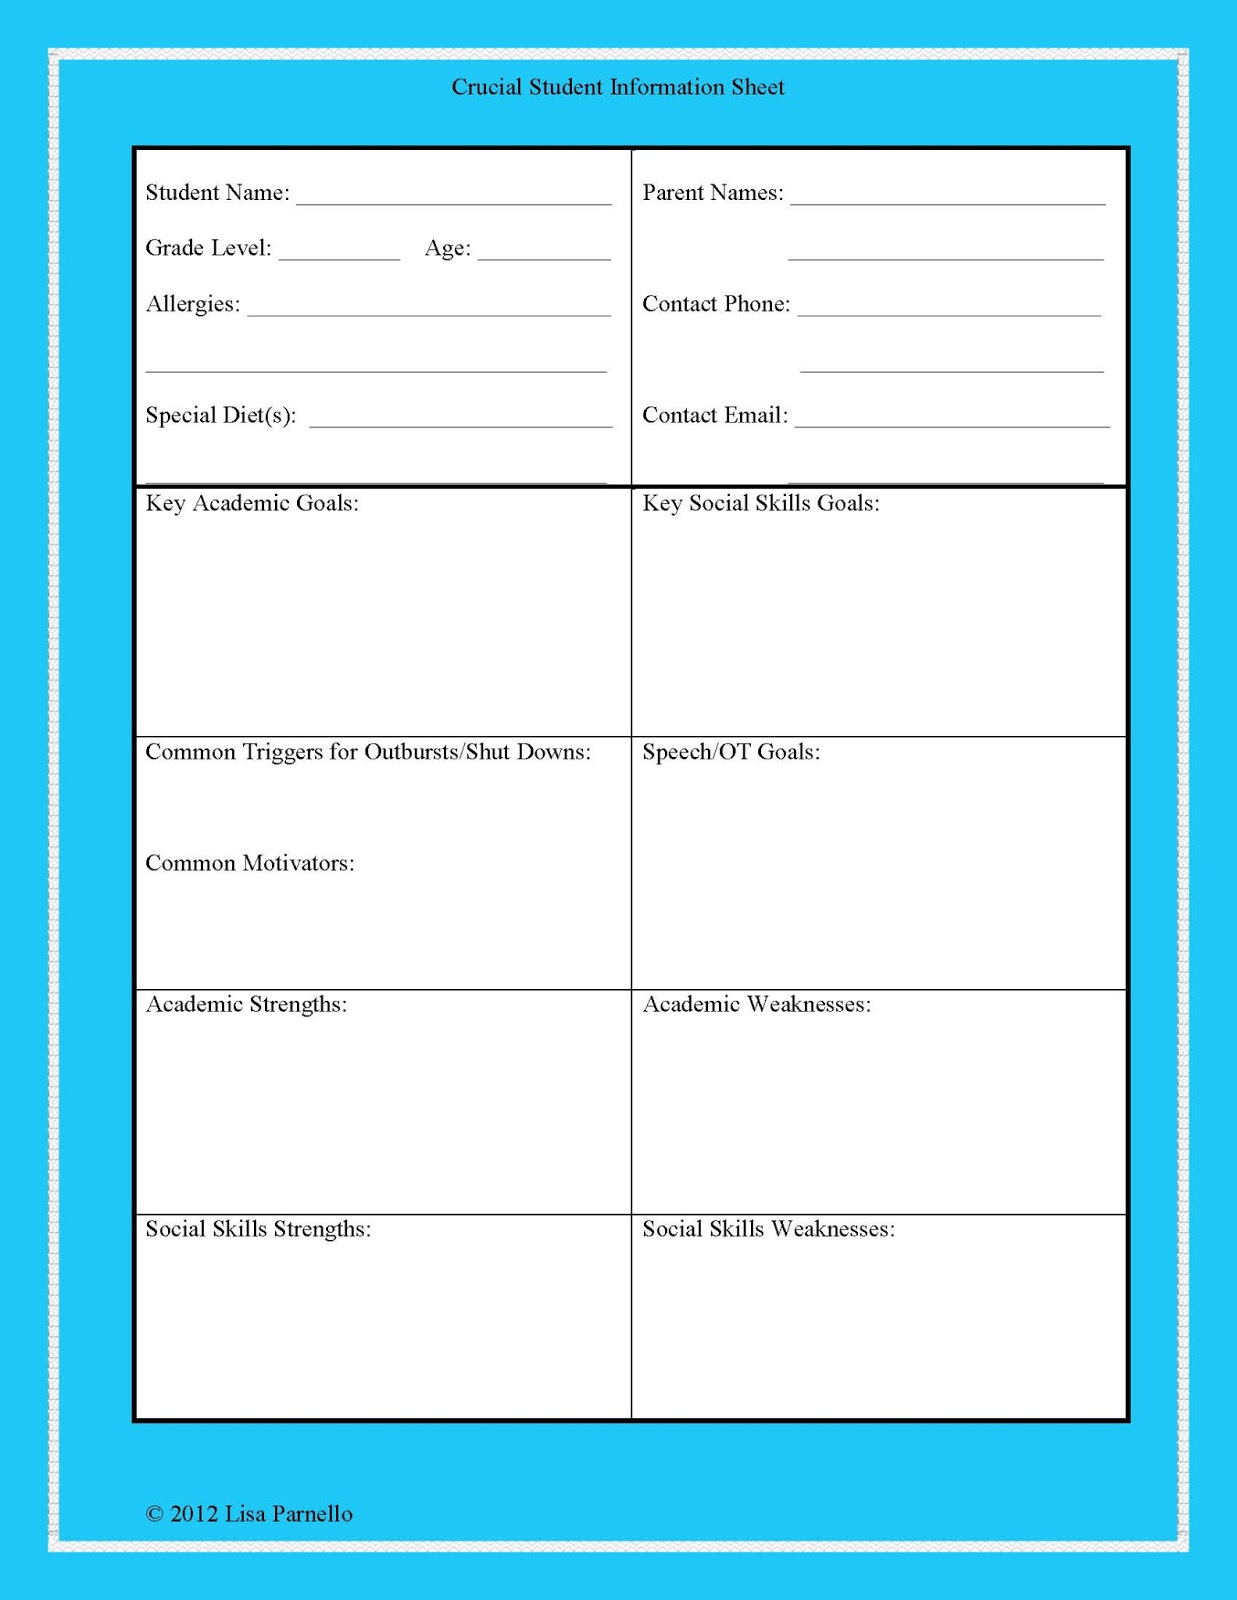 Blank Twitter Template For Students | White Gold